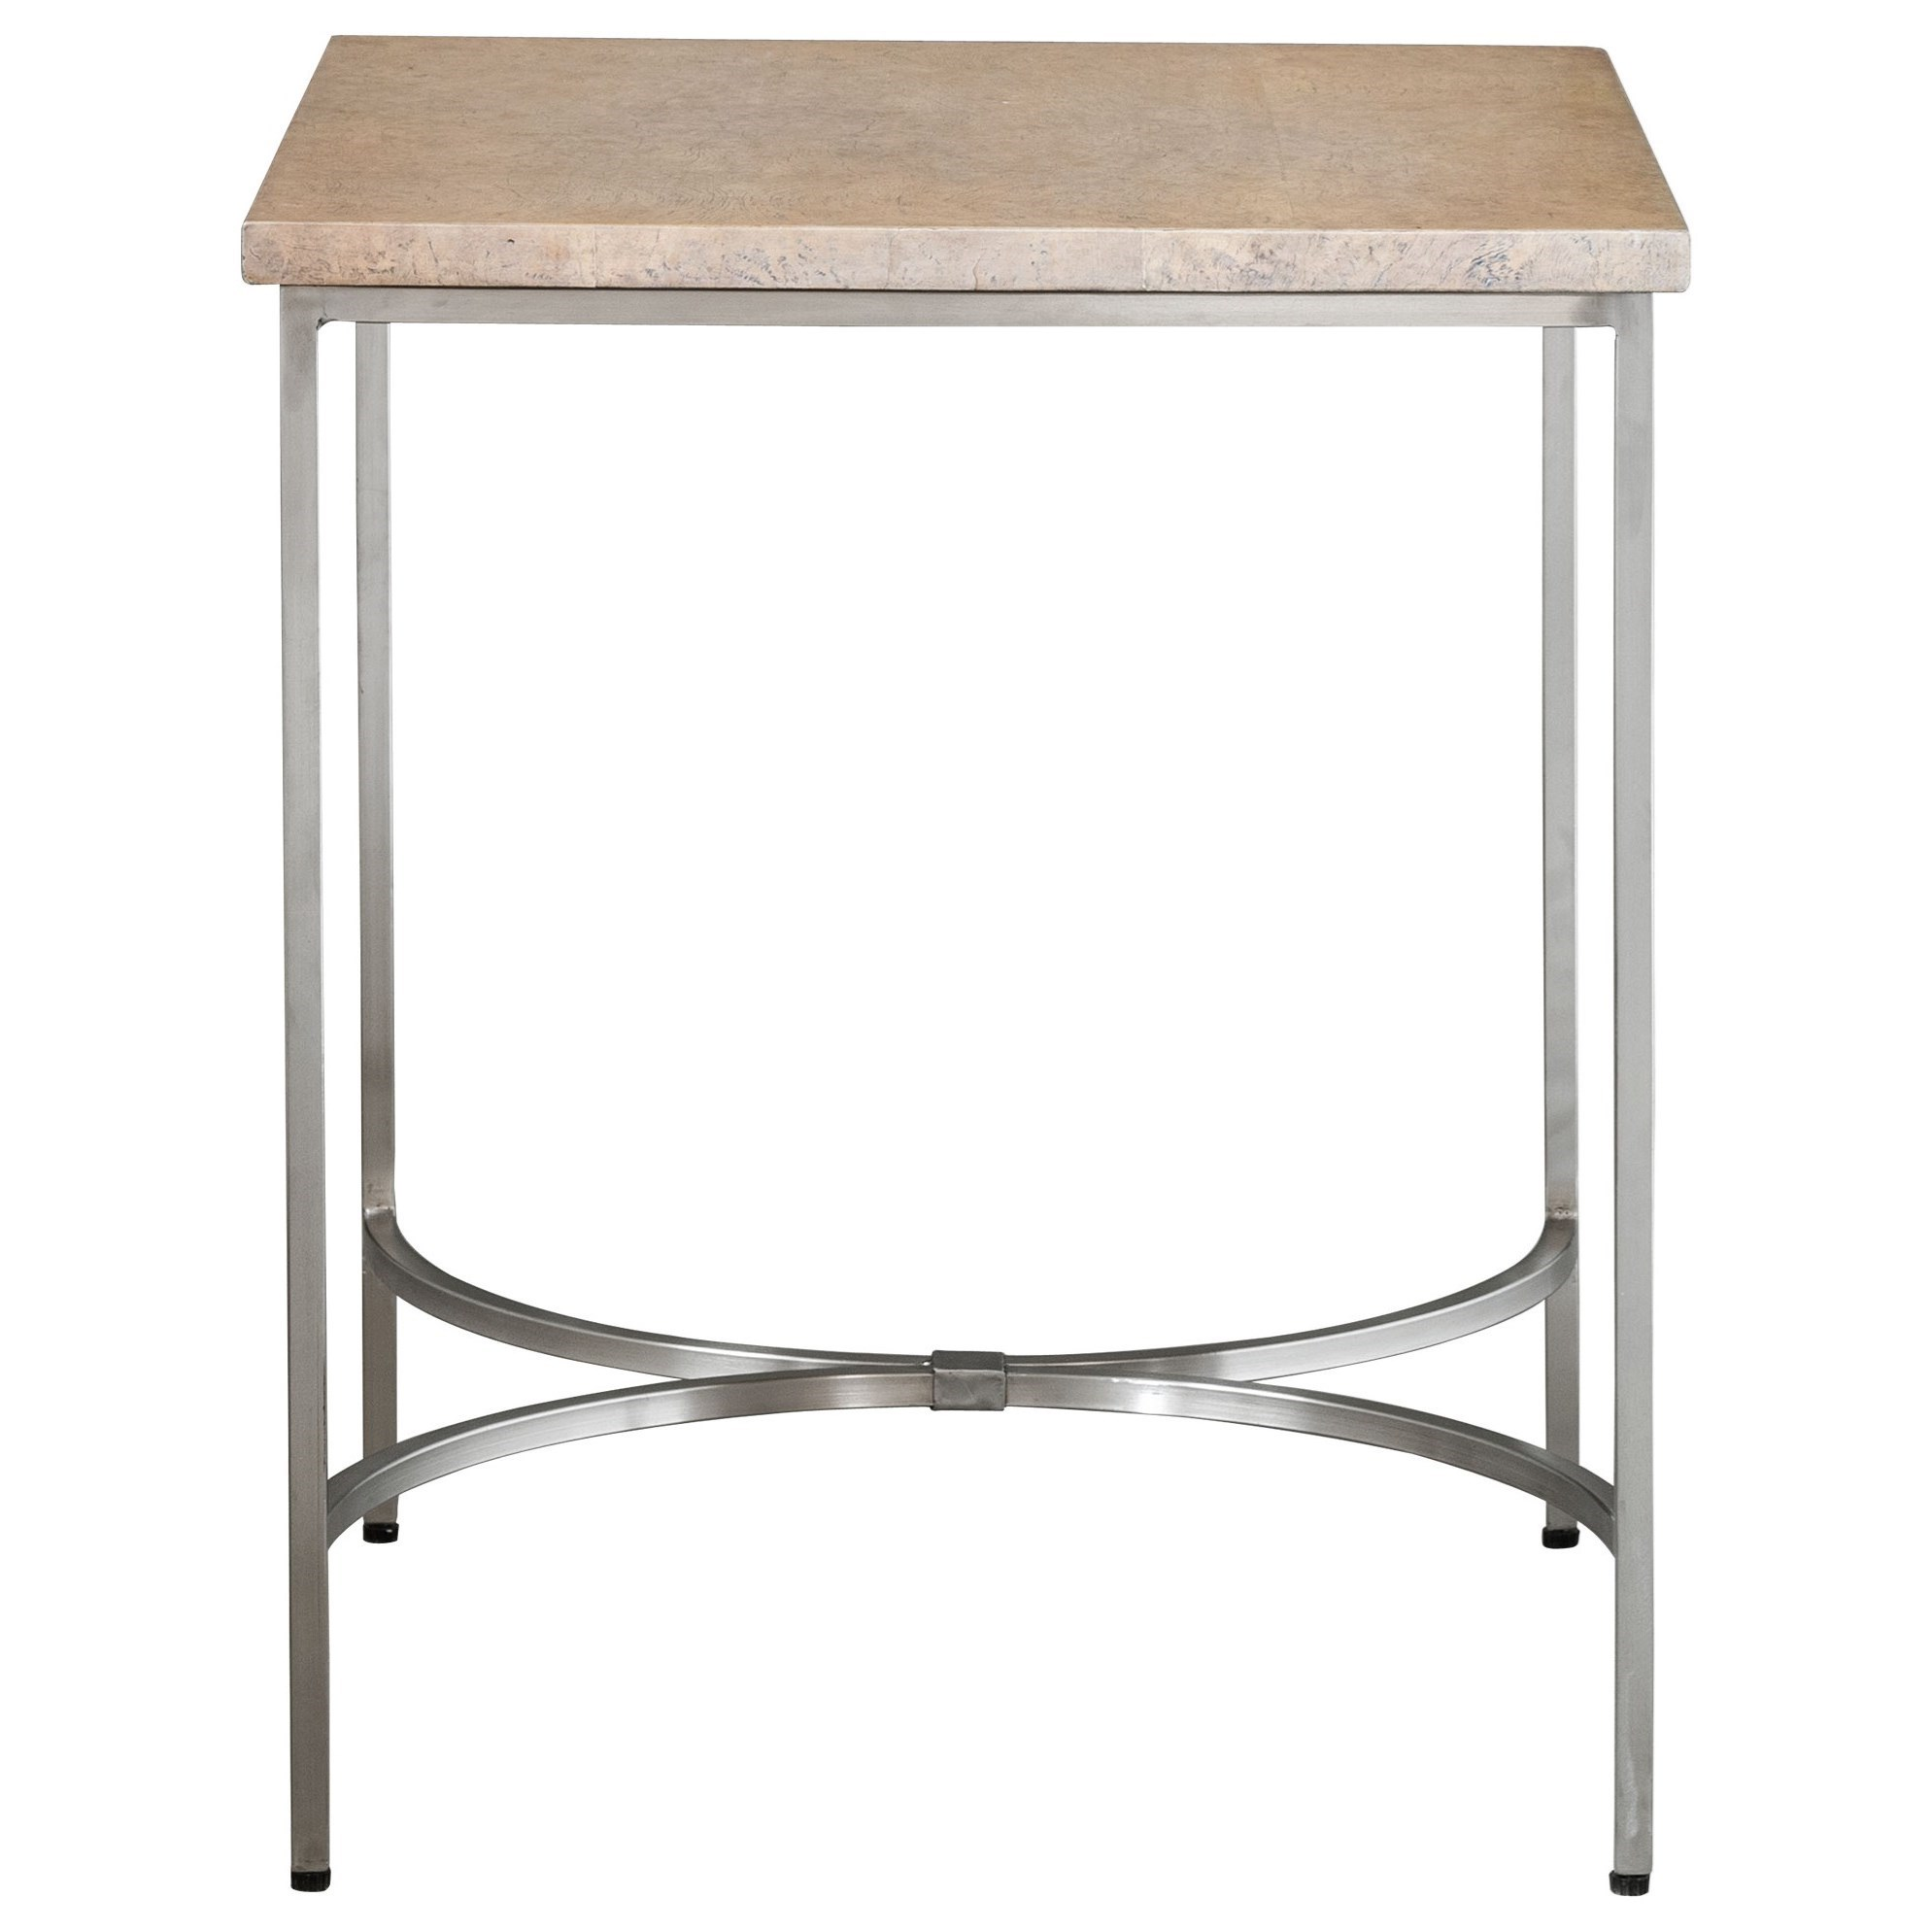 Accent Furniture - Occasional Tables Drummond Modern Side Table by Uttermost at Del Sol Furniture